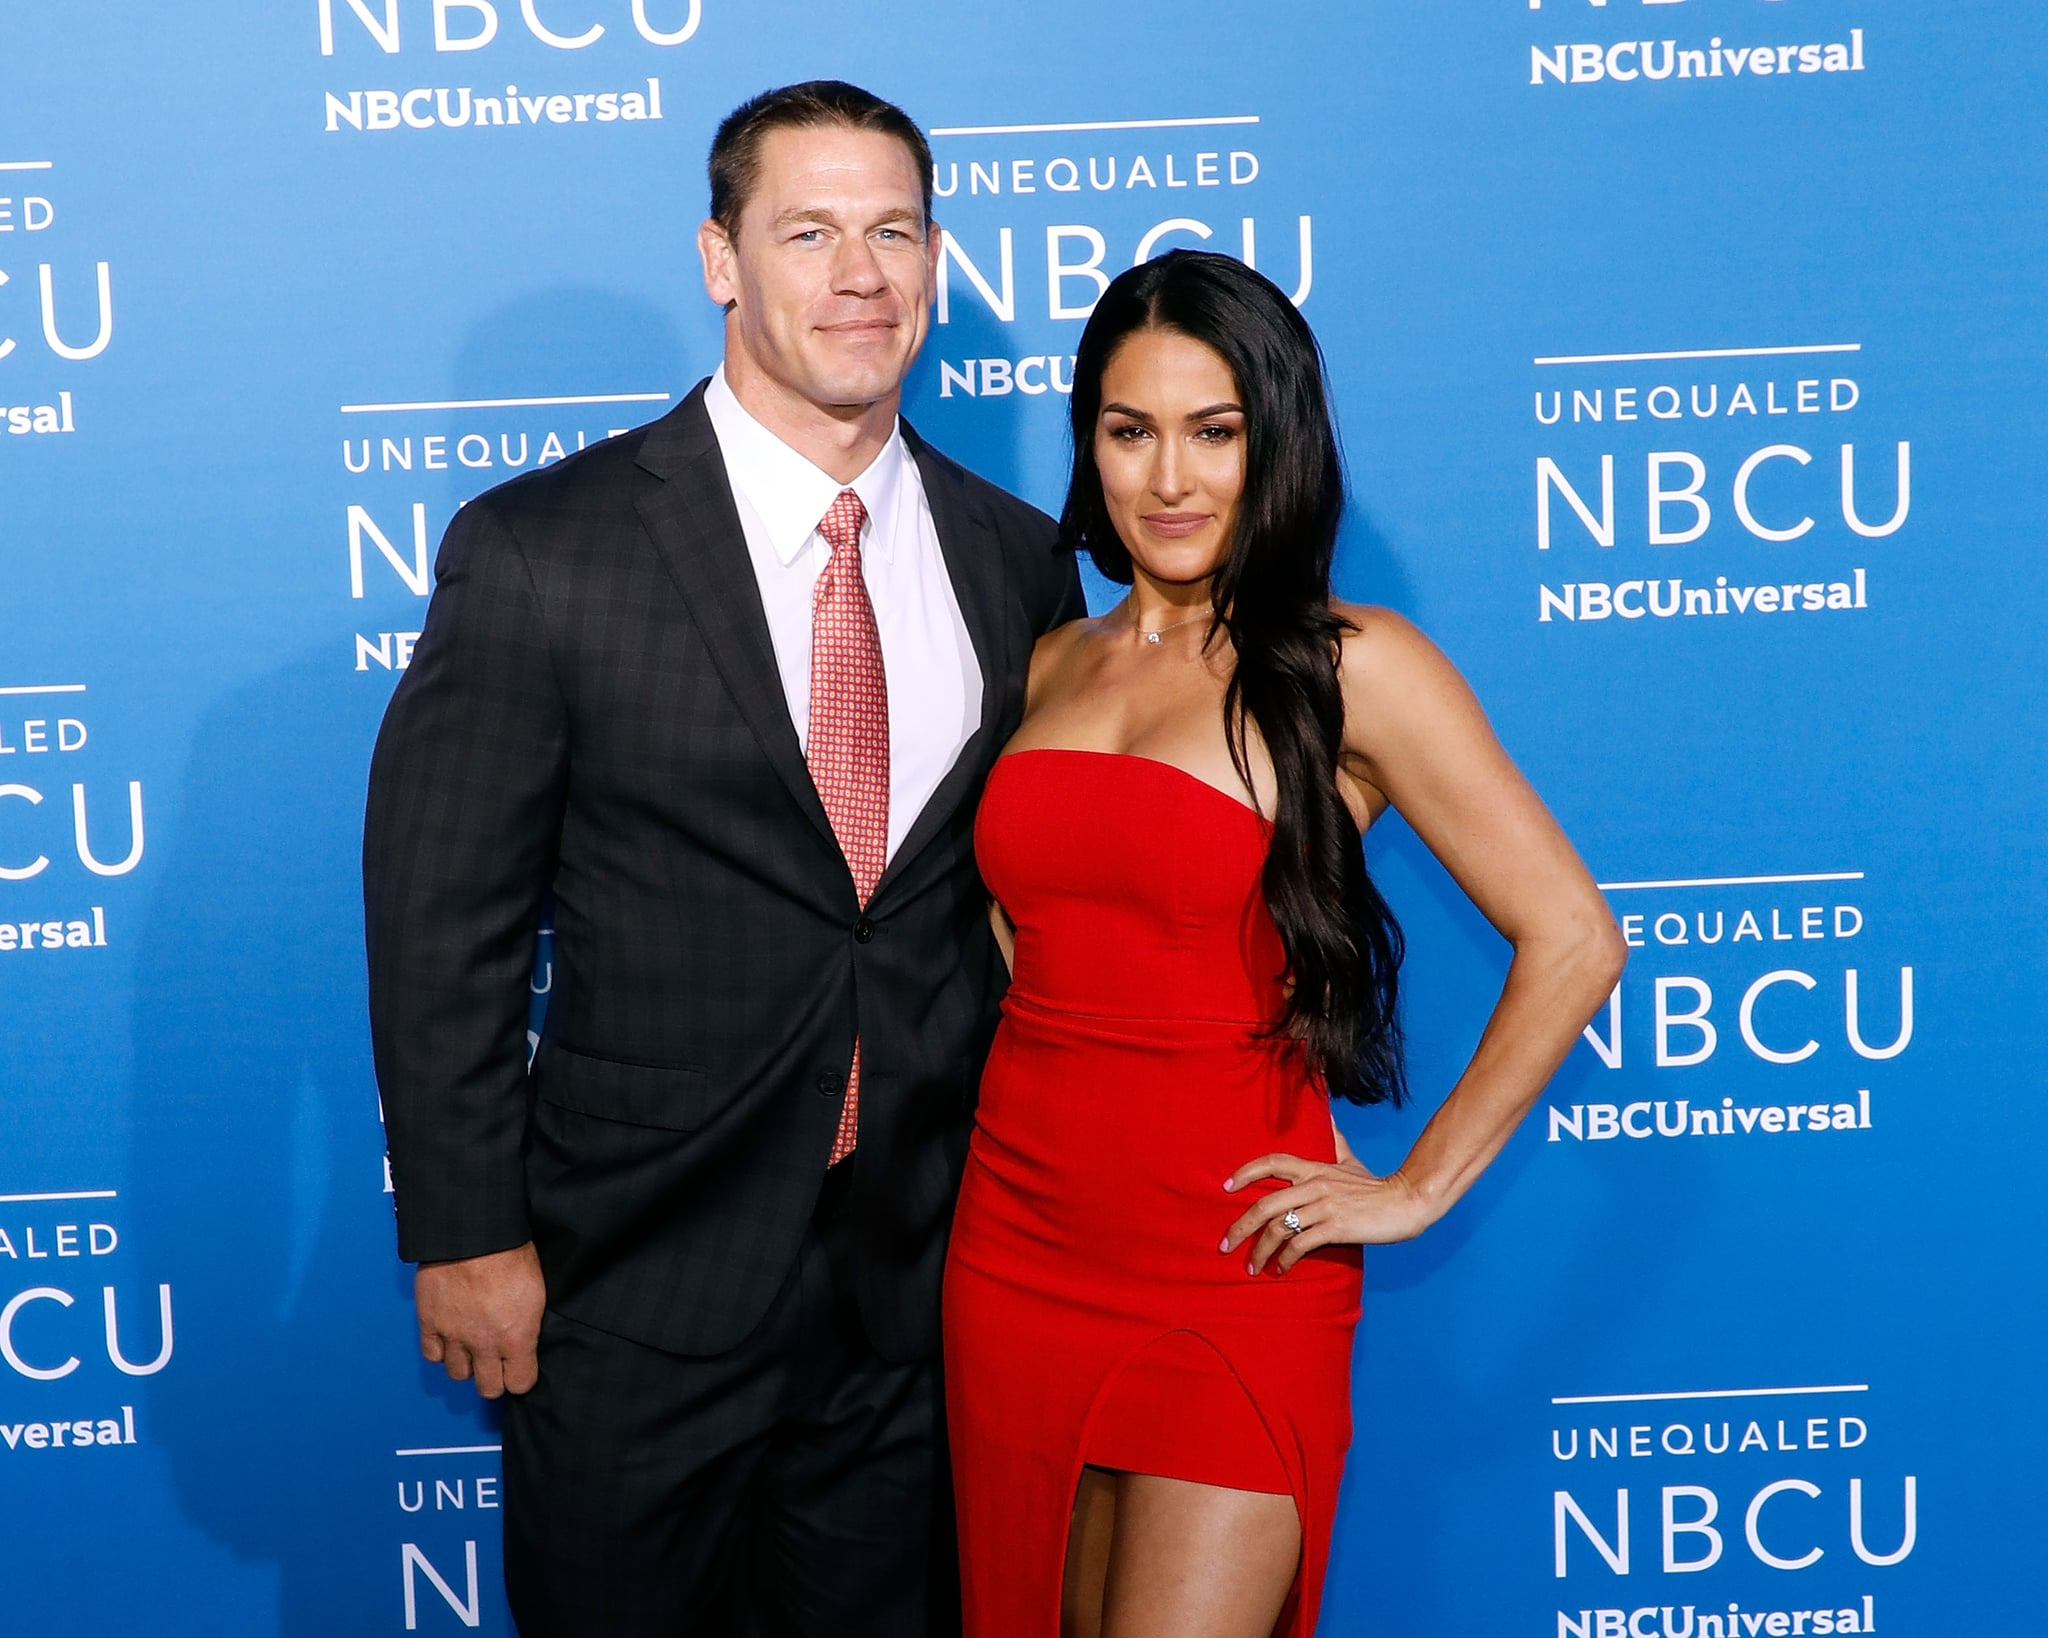 NEW YORK, NY - MAY 15:  John Cena and Nikki Bella attend the 2017 NBCUniversal Upfront at Radio City Music Hall on May 15, 2017 in New York City.  (Photo by Taylor Hill/FilmMagic)